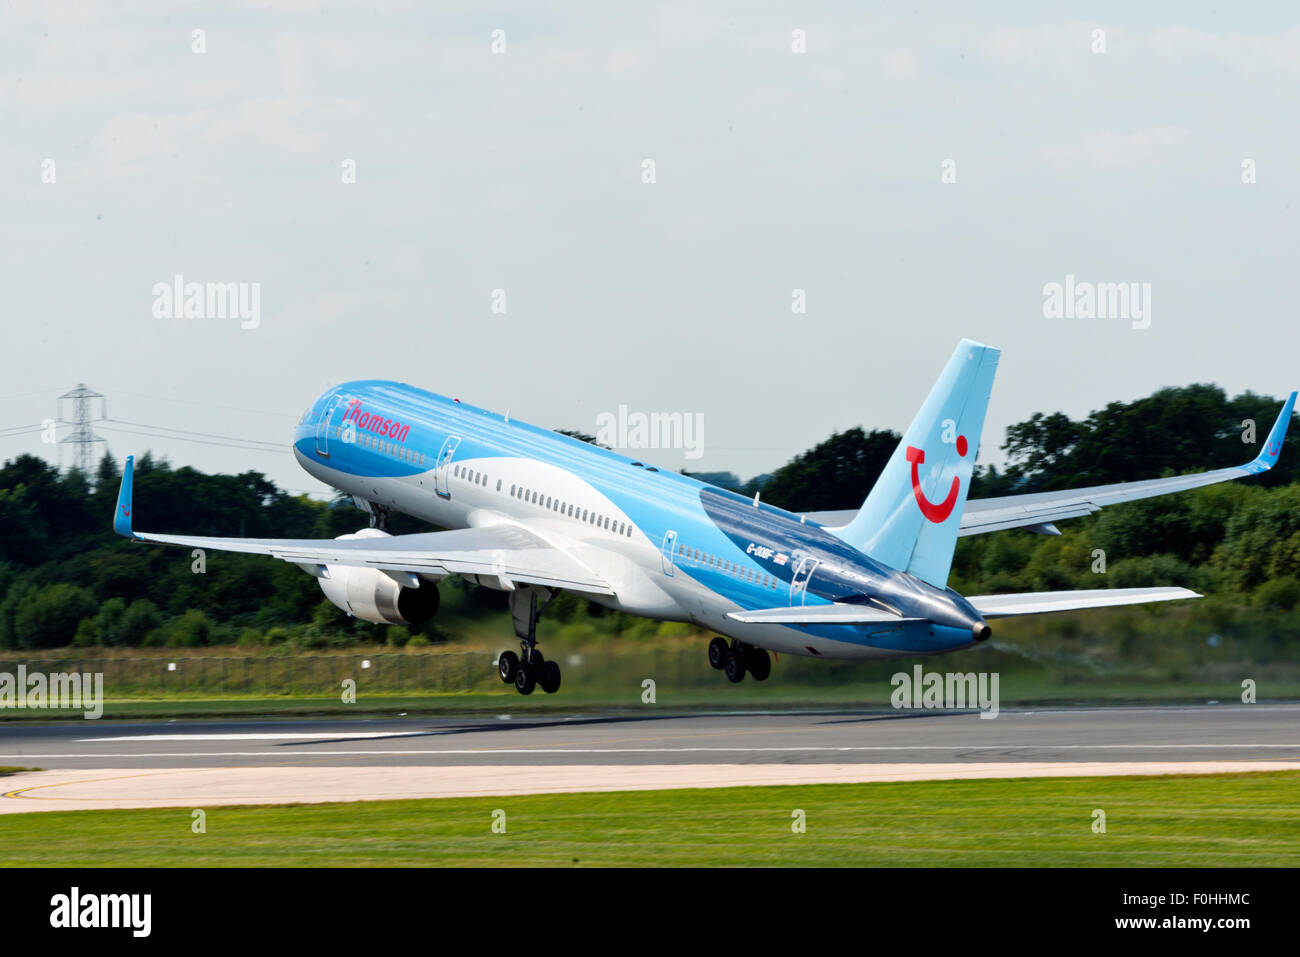 Boeing 757 G-OOBF Thomson Airways Manchester Airport England UK departure - Stock Image